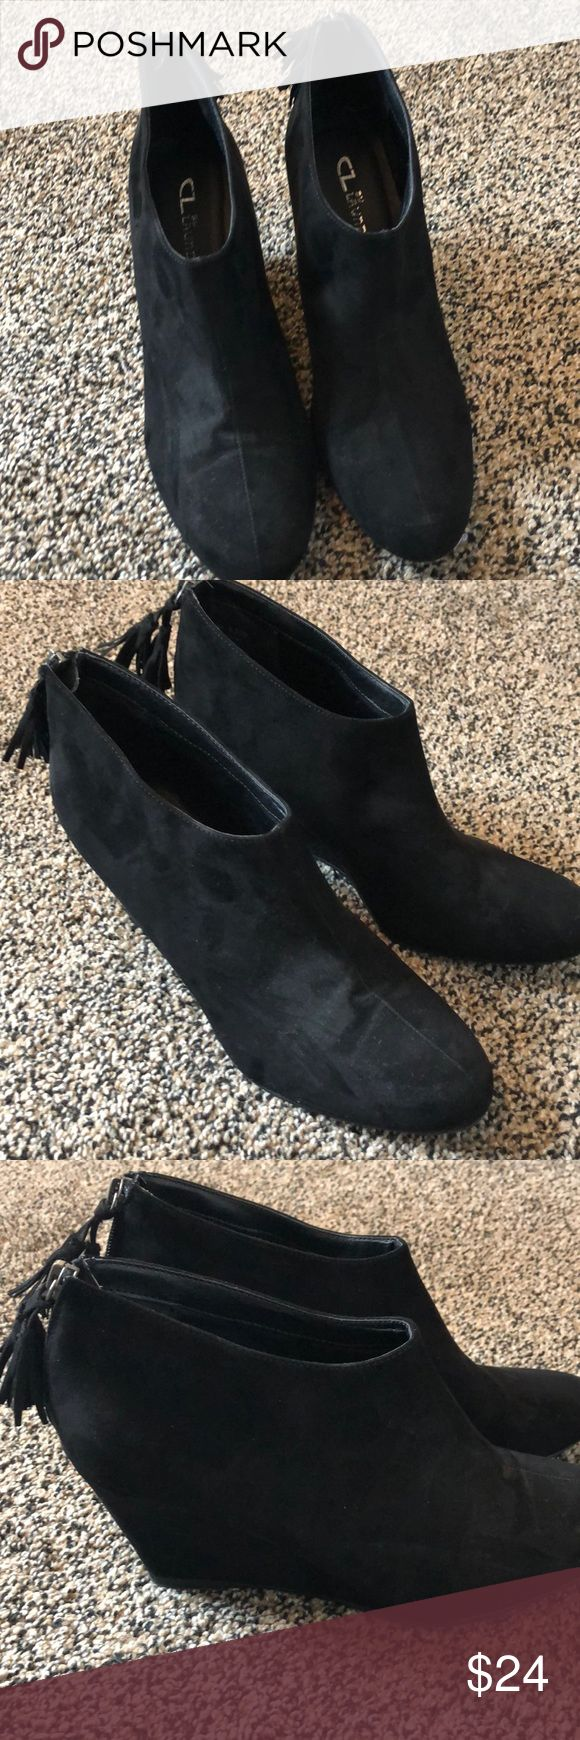 Chinese Laundry boots Black suede ankle boots. 3in heel never worn Chinese Laund…